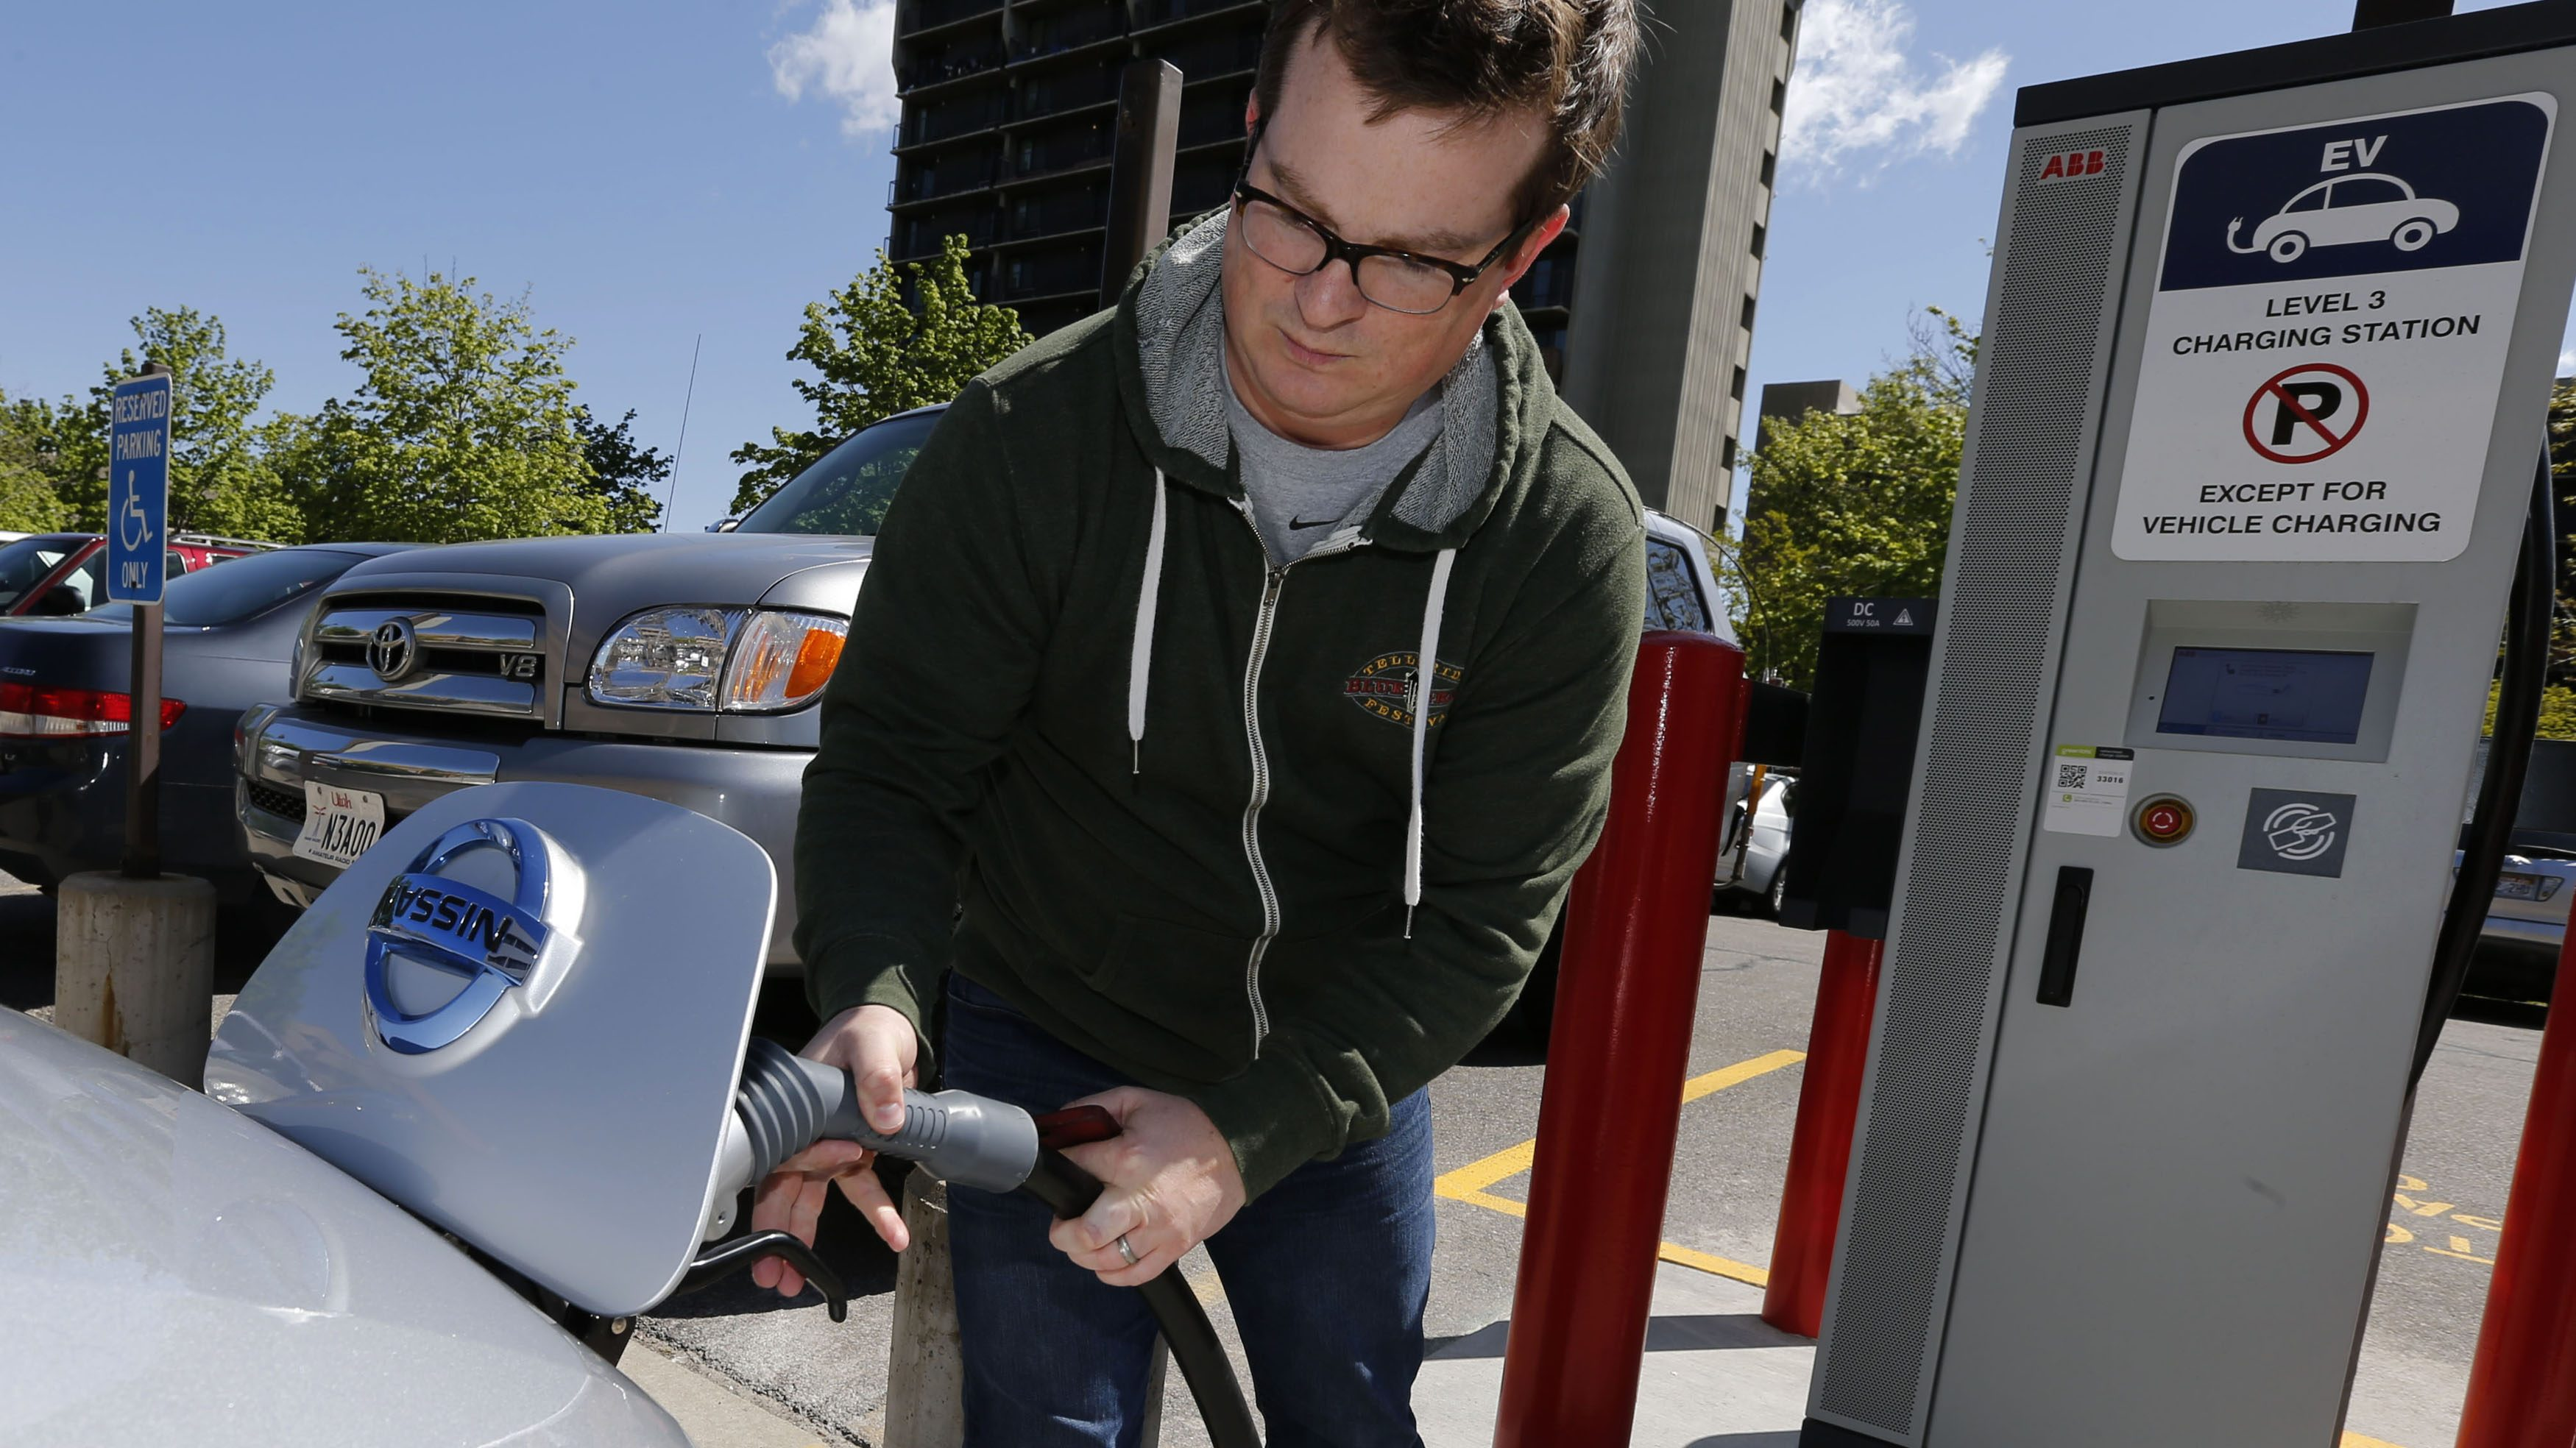 A man hooks up a charging cable so he can charge his 2013 Nissan Leaf electric car at ABB Inc.'s DC fast charging station in Salt Lake City